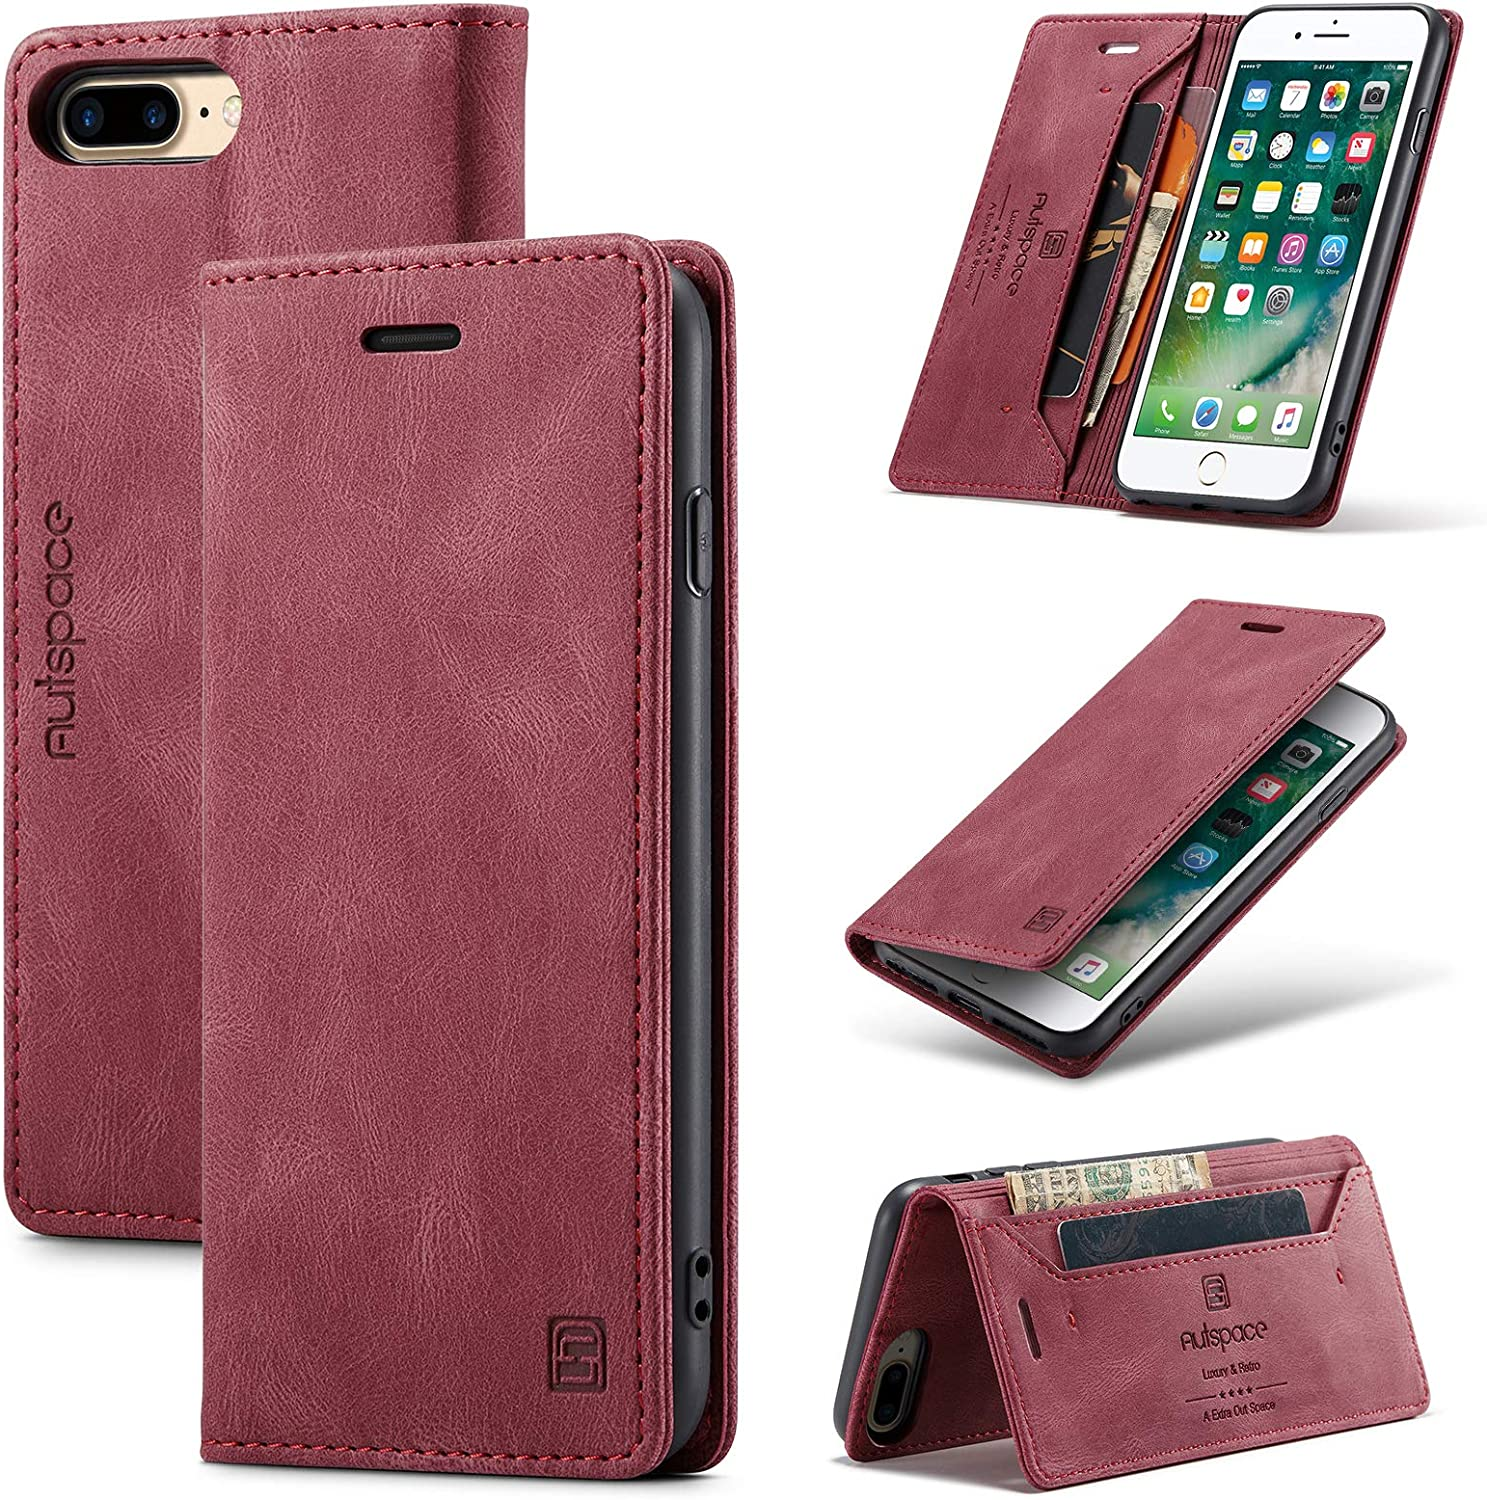 TOHULLE for iPhone 6 Plus 6S Plus iPhone 7 Plus iPhone 8 Plus Case, Vintage Wallet Case Card Holder Kickstand Hidden Magnetic Flip Leather Case for iPhone 6 Plus/6S Plus/7 Plus/8 Plus - Red